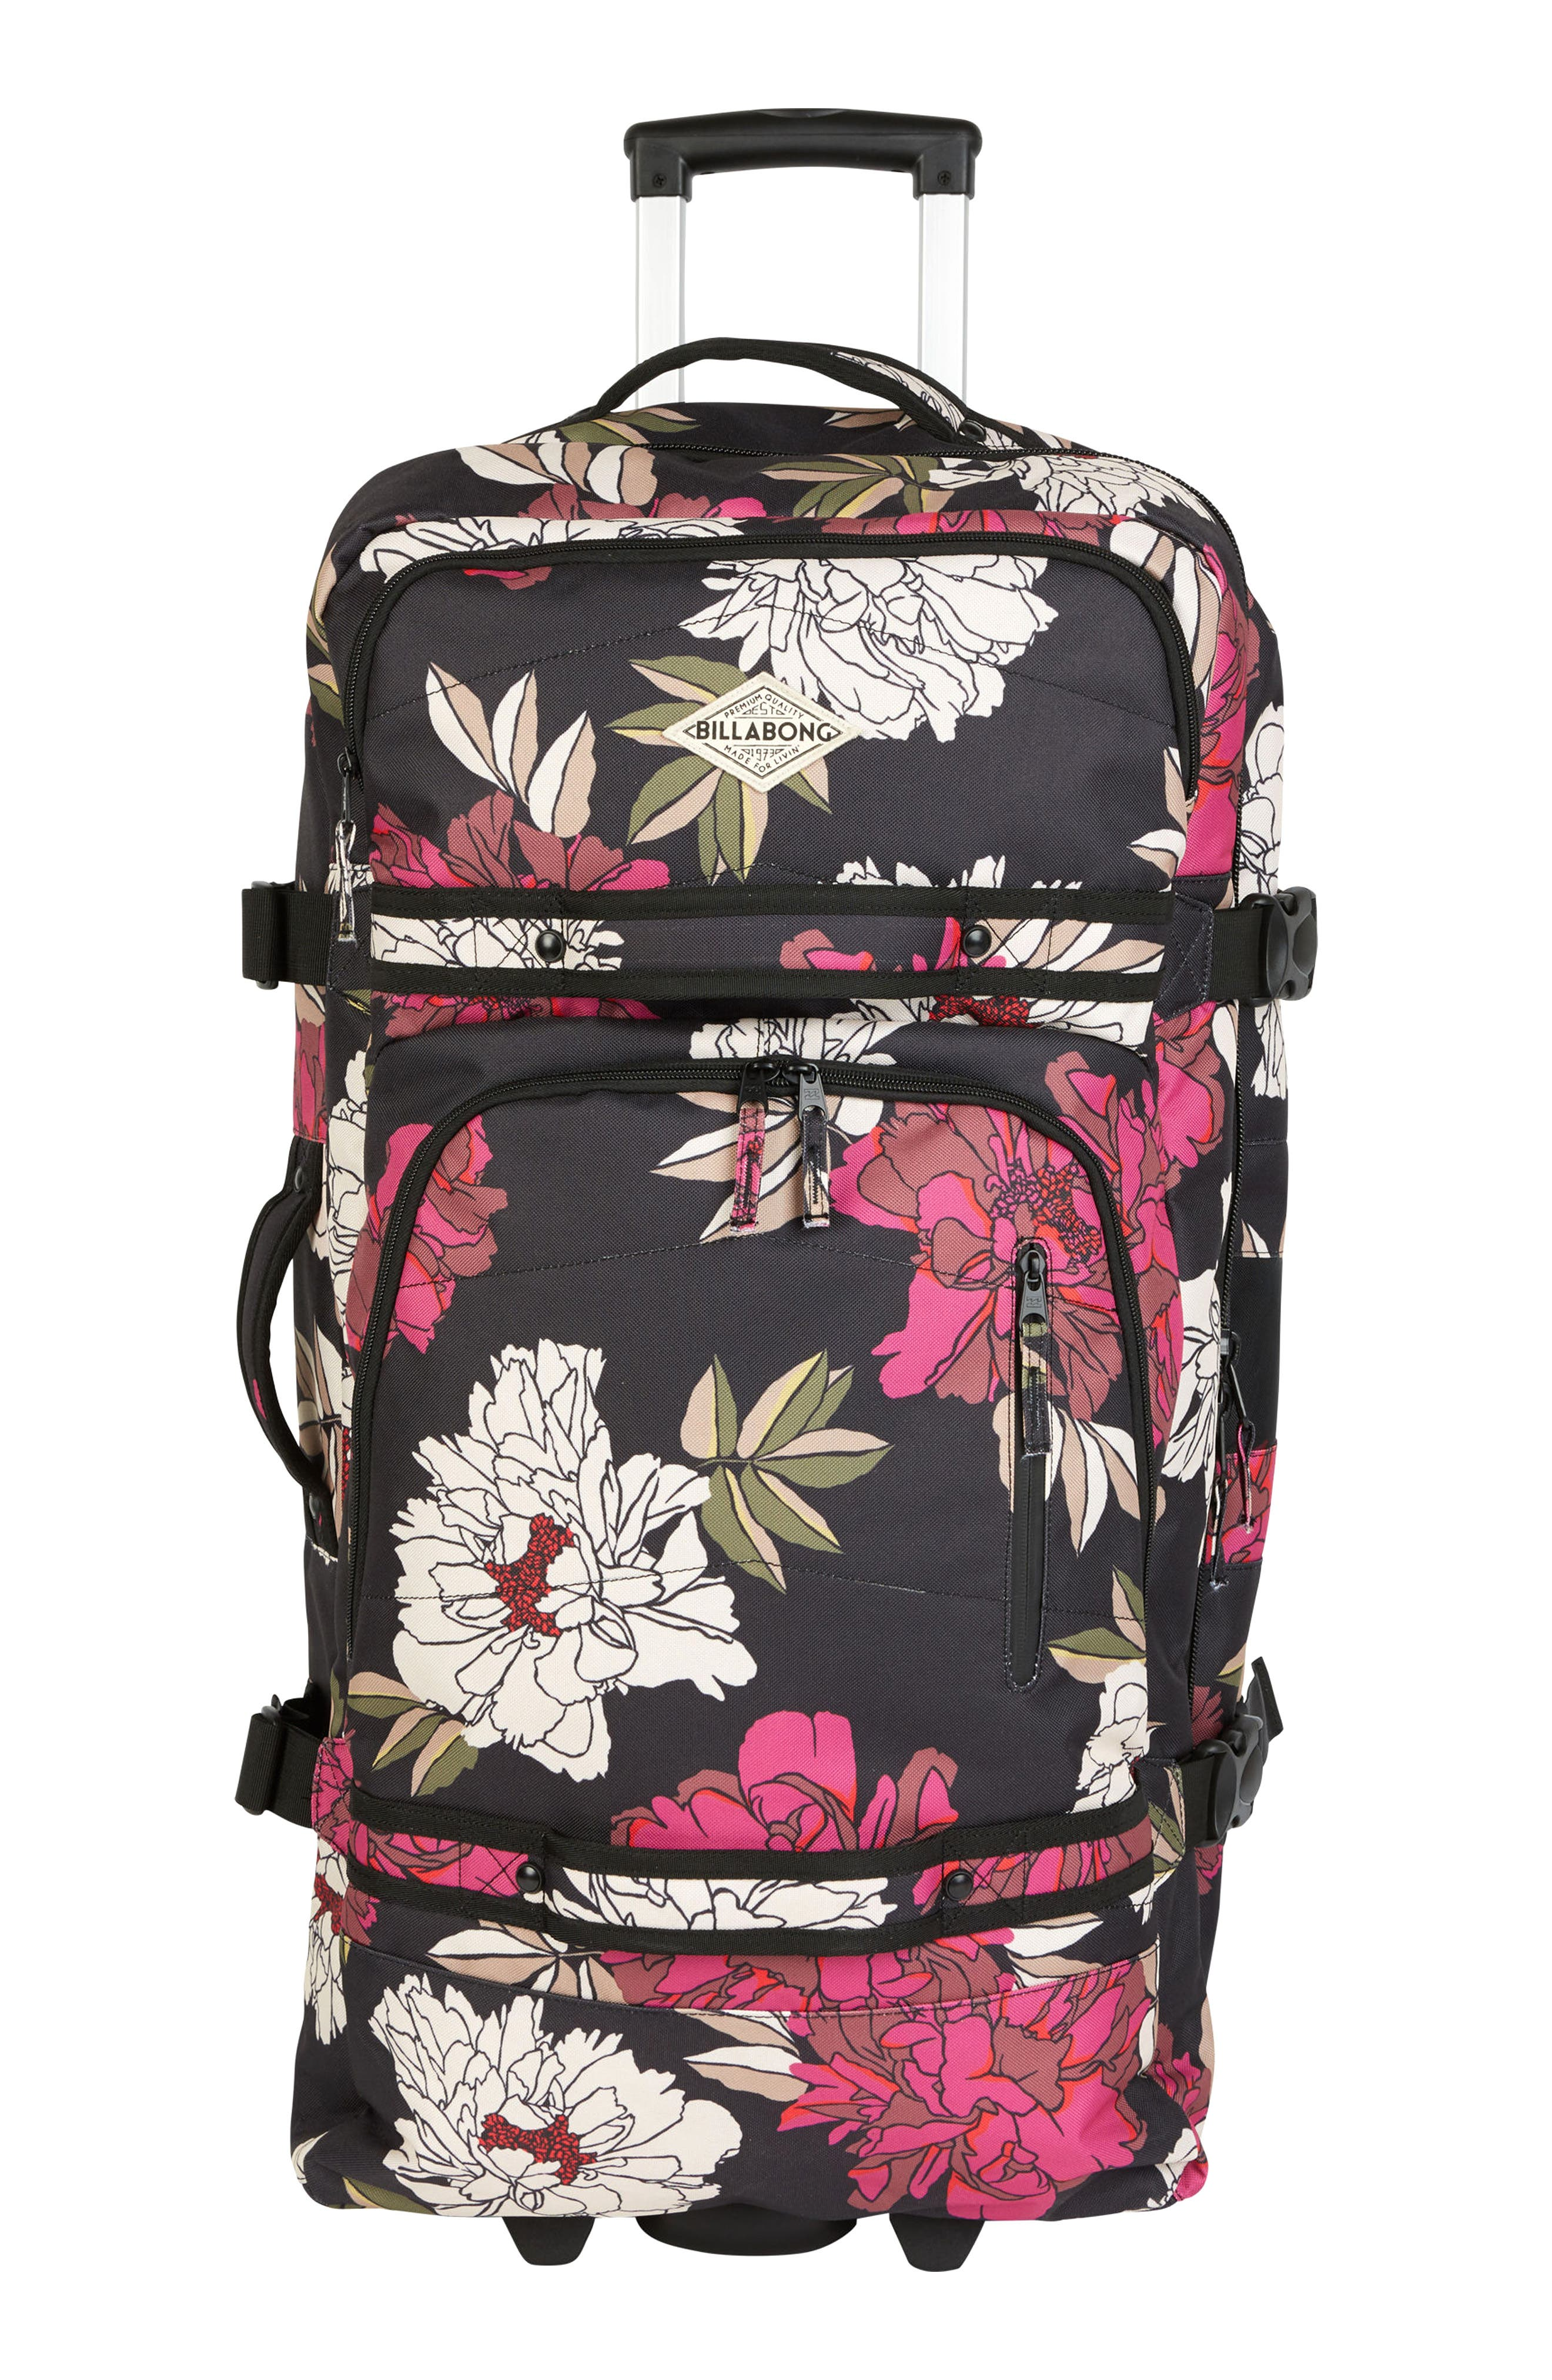 Keep It Rollin Duffel Bag,                             Main thumbnail 1, color,                             Rebel Pink